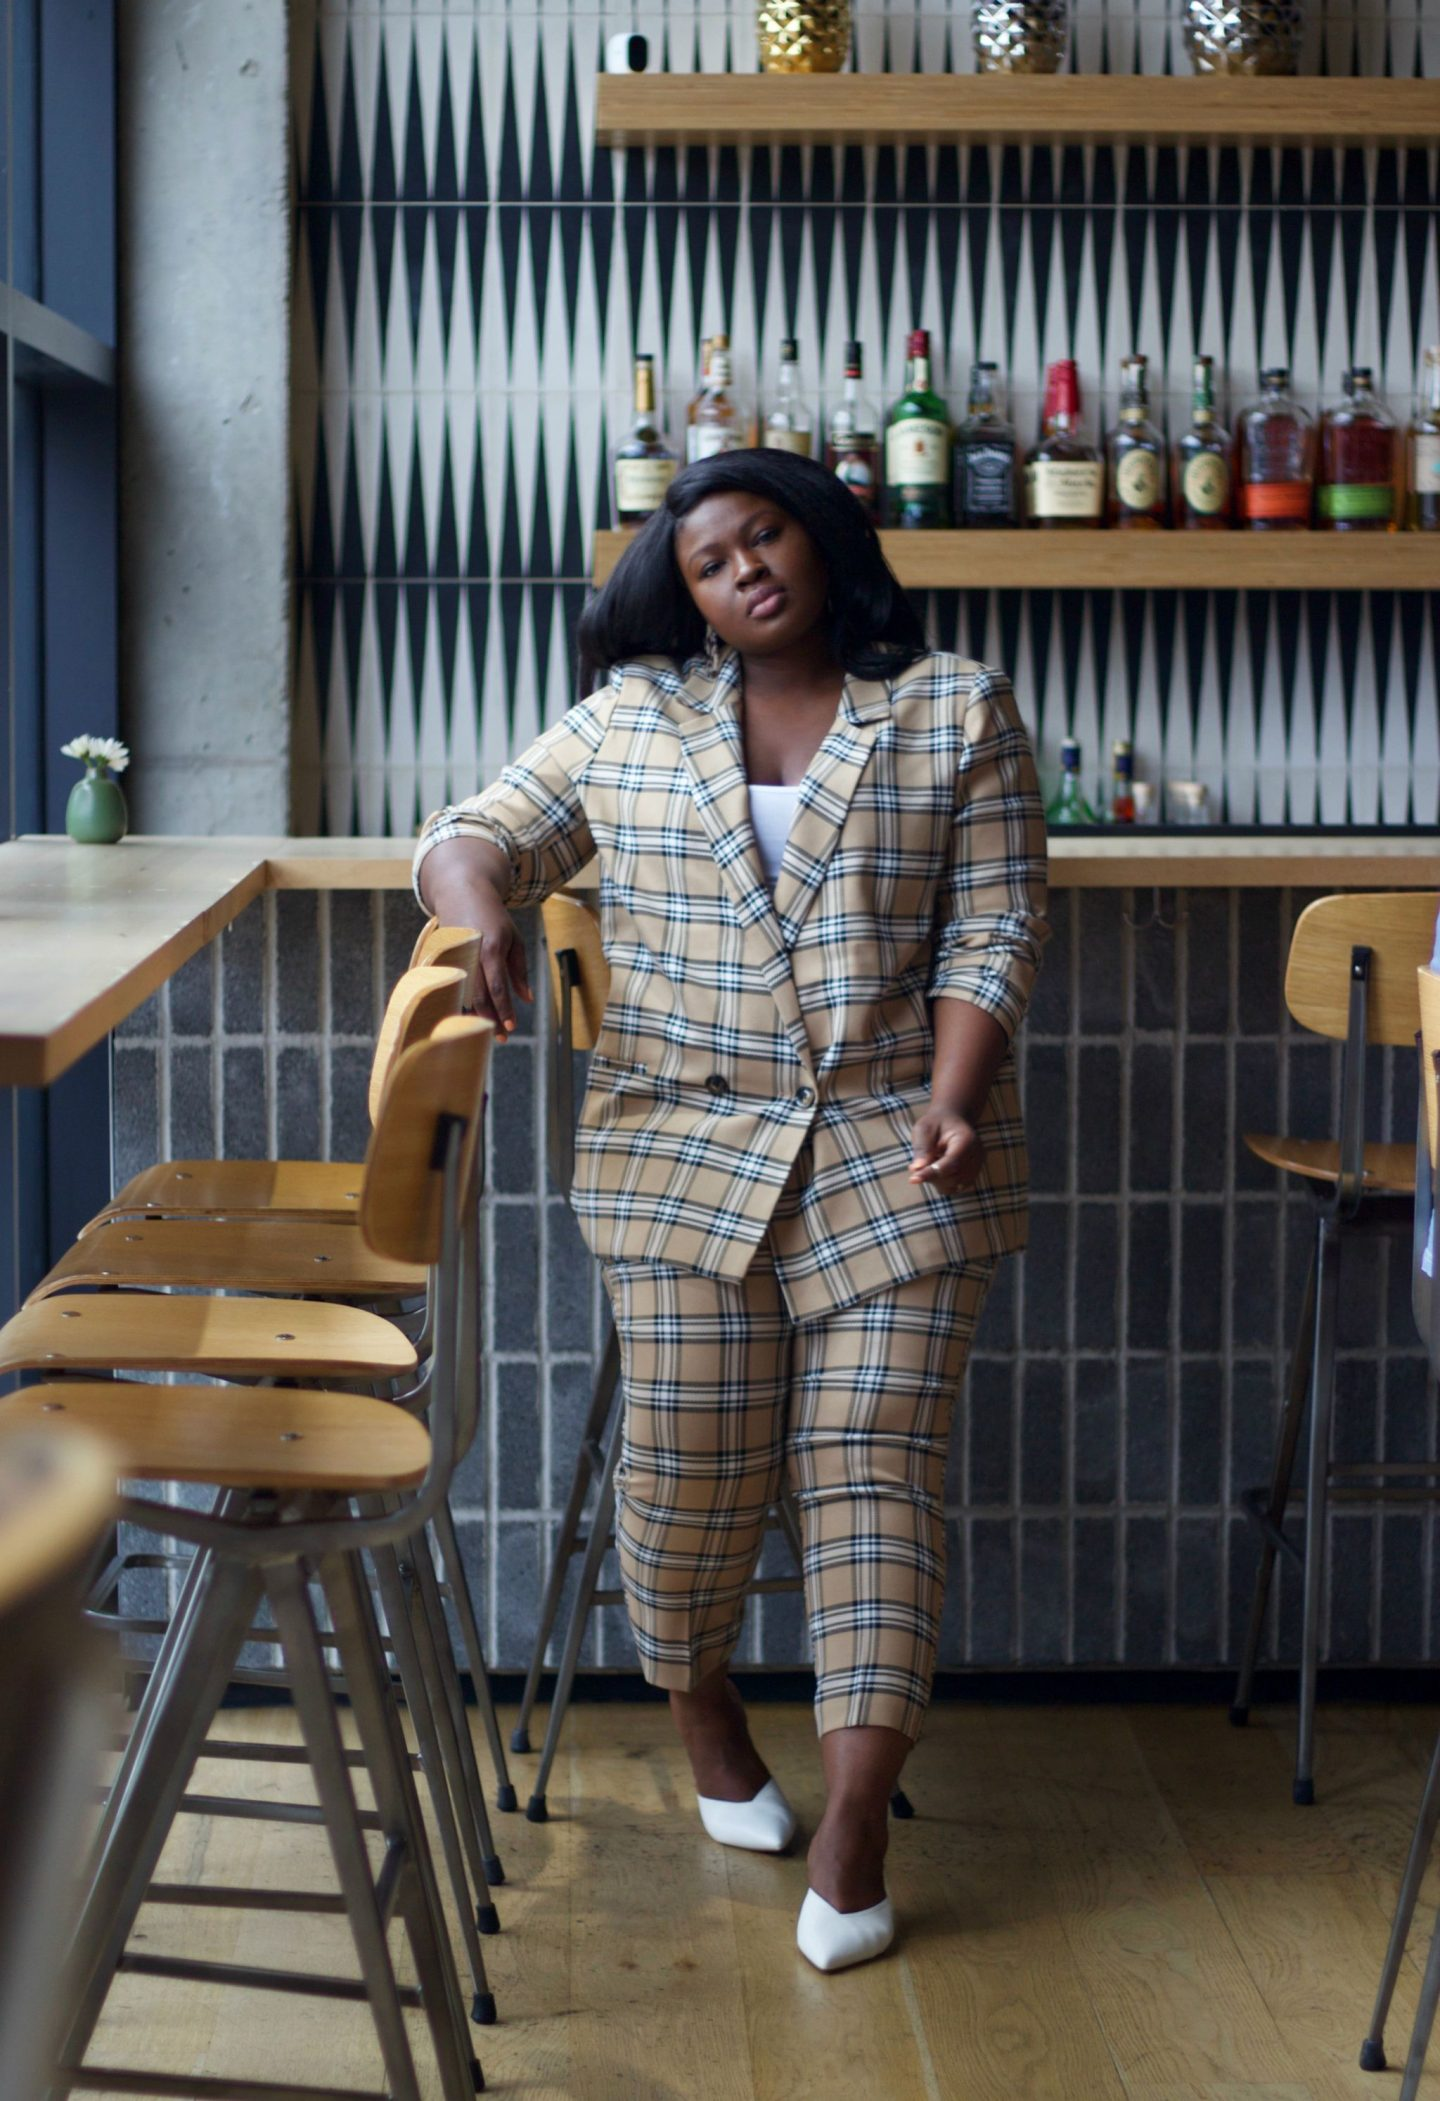 get-that-raise-with-these-hacks-summer-plus-size-work-wear-outfit-idea